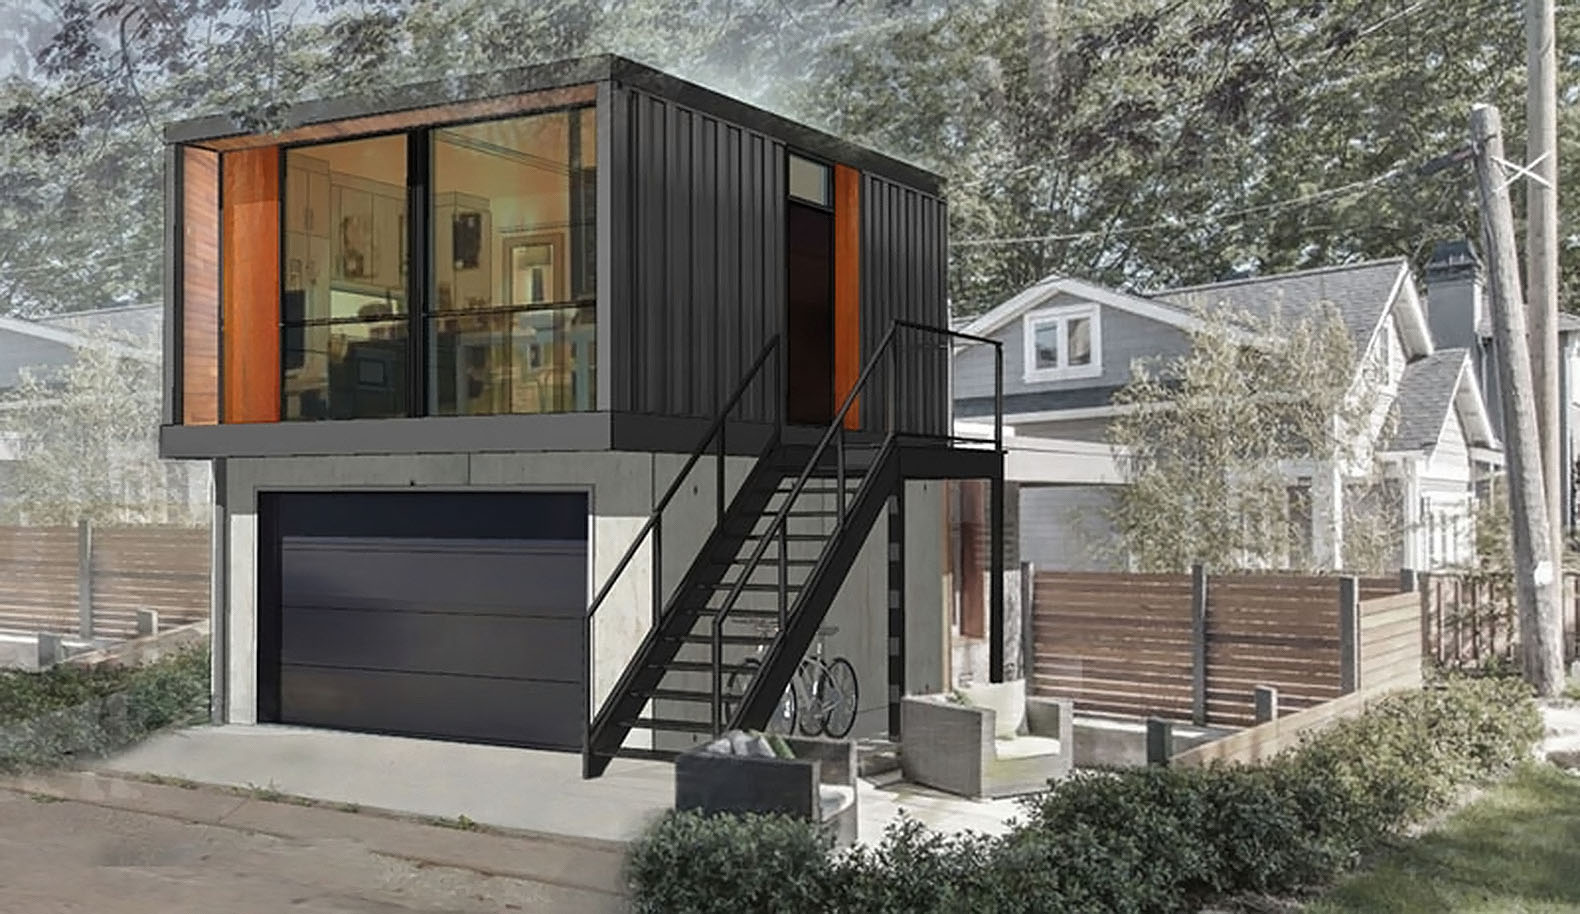 You can order HonoMobos prefab shipping container homes online